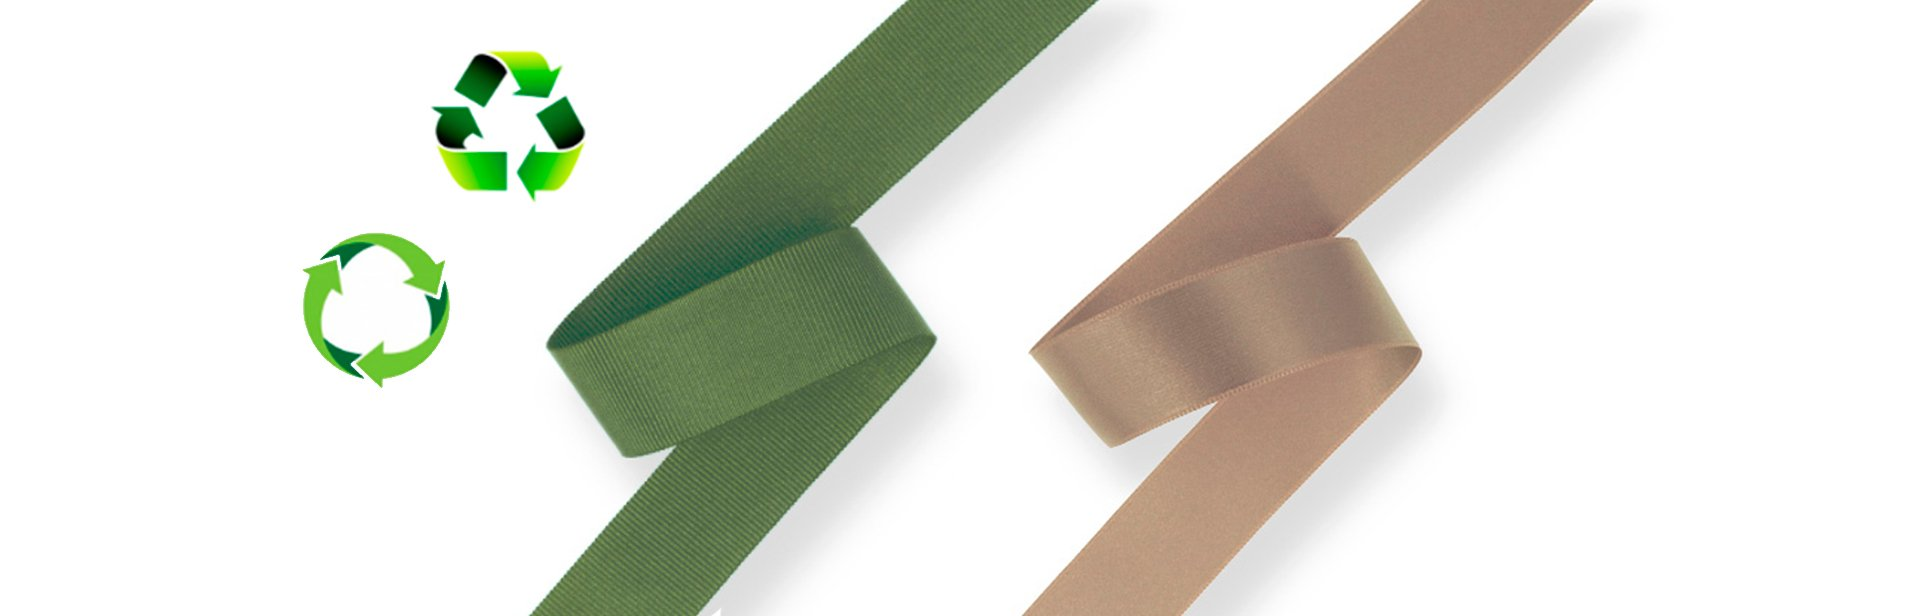 New 100% recycled polyester ribbons made from plastic packaginc